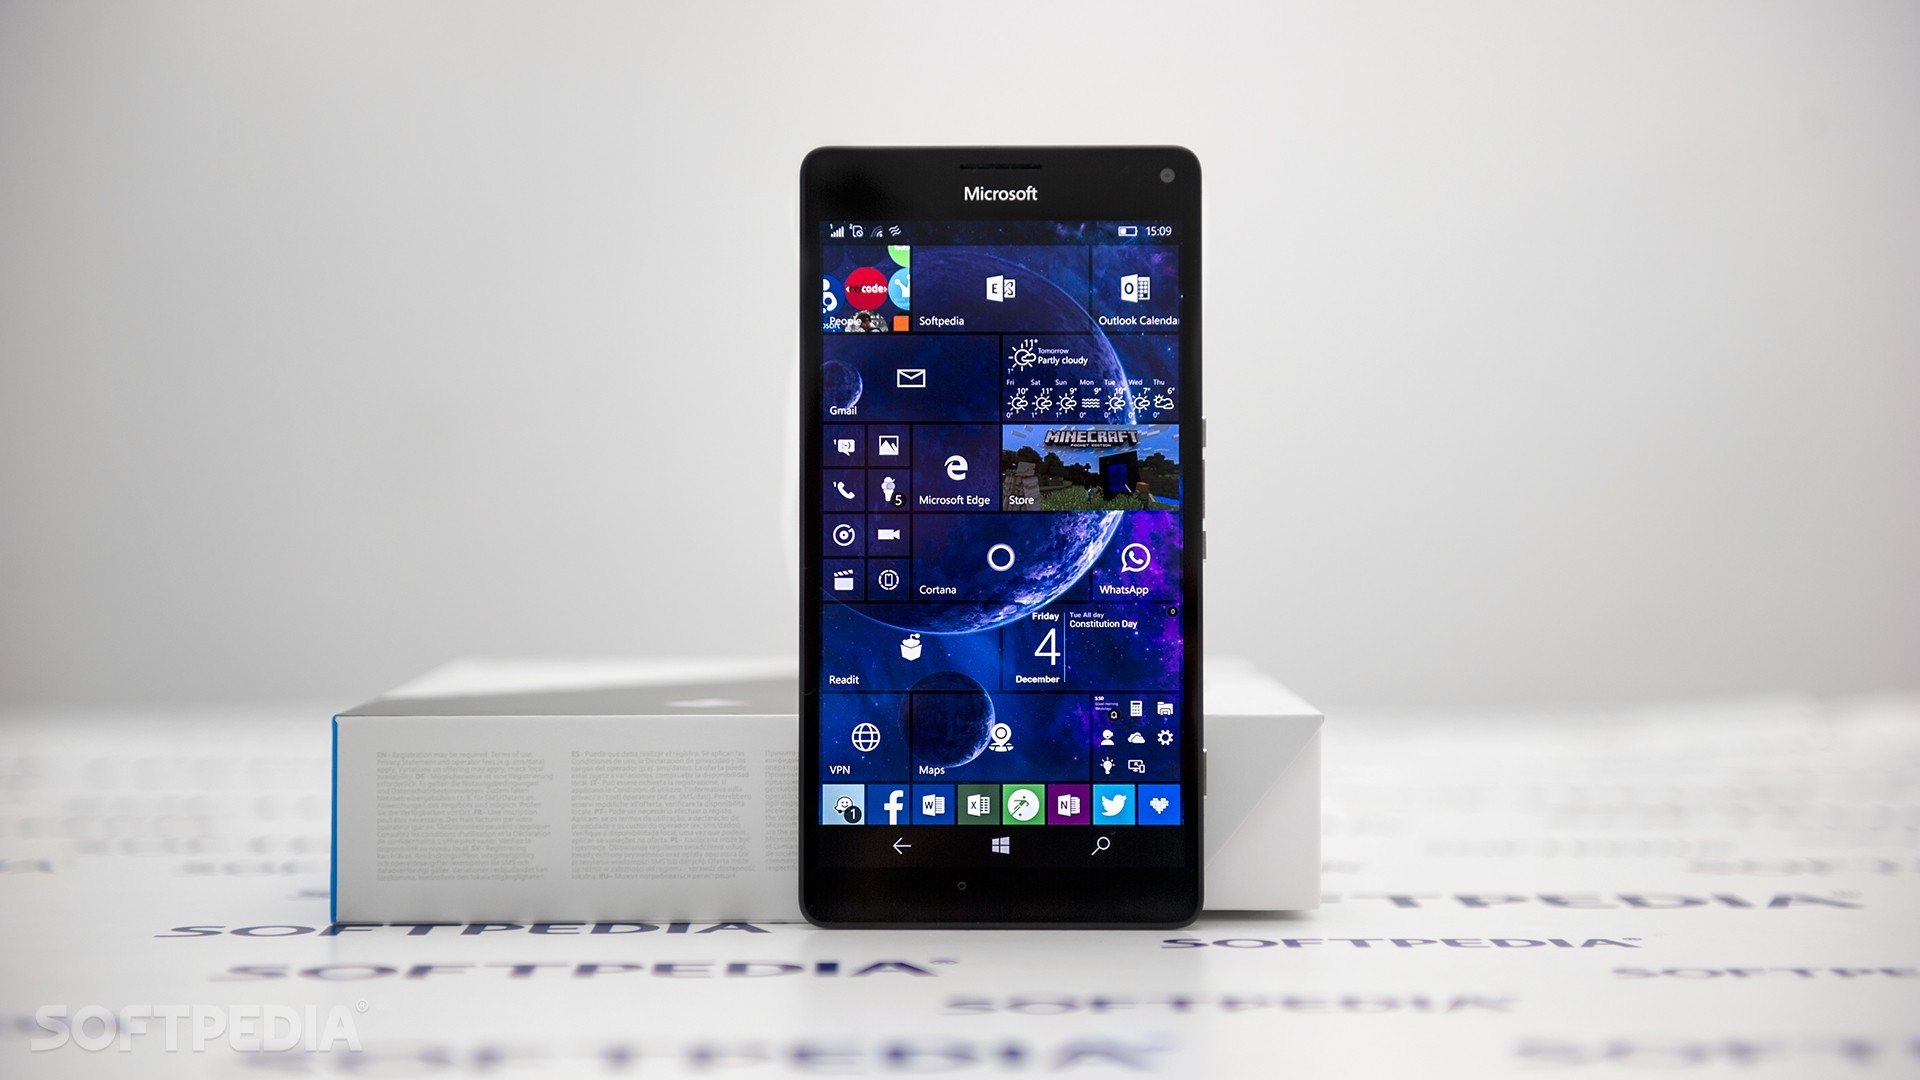 Windows Phone Running Not One, Not Two, Not Three But Four Operating Systems